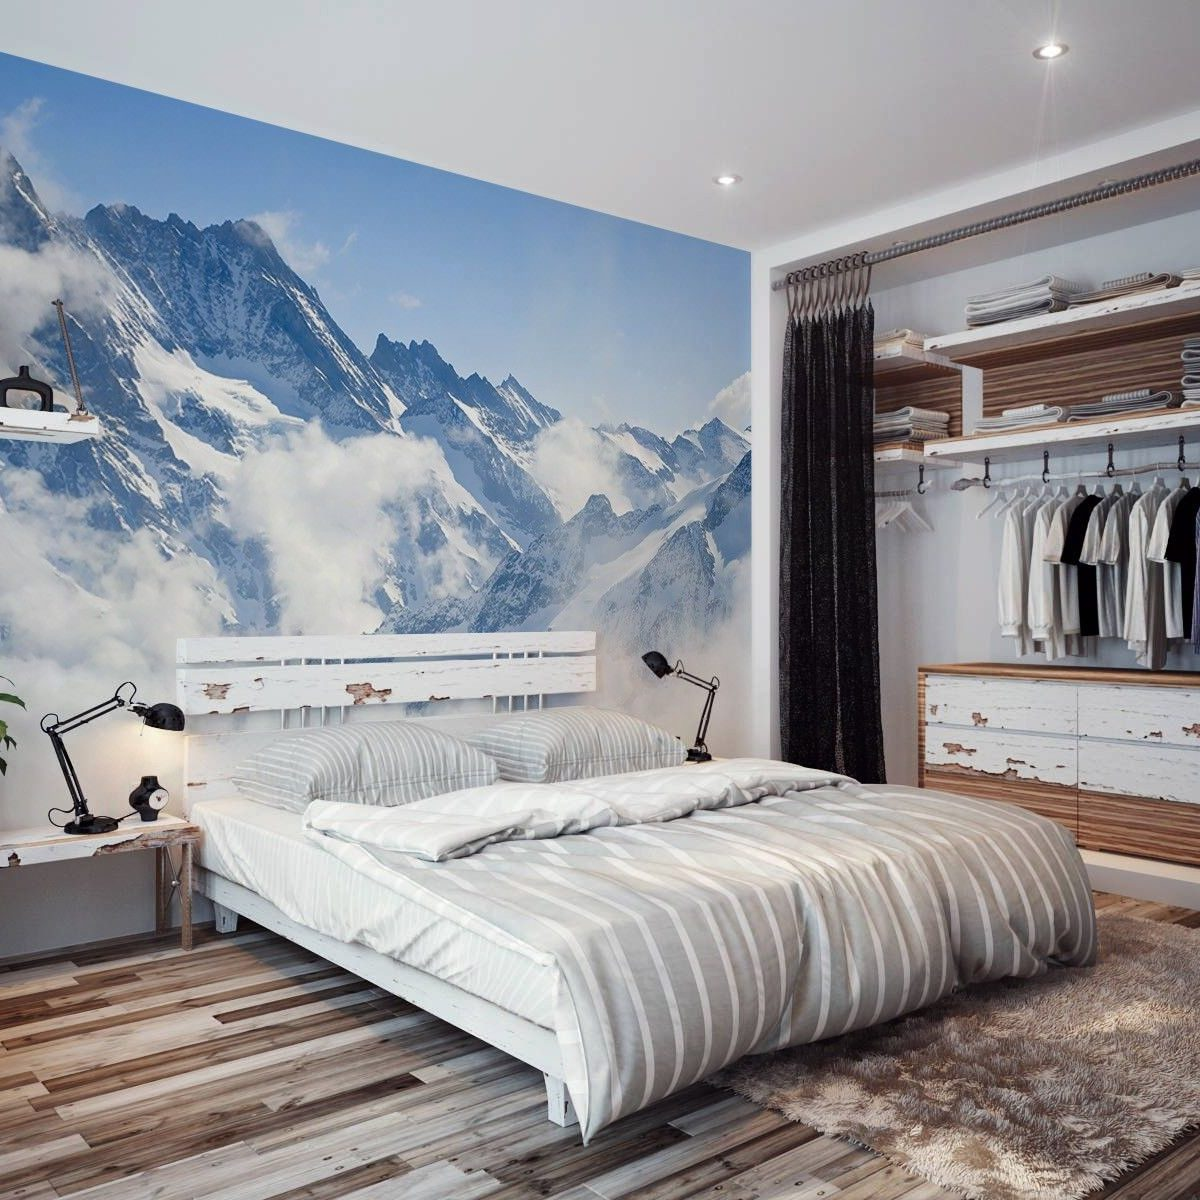 A bedroom with a mountain in the background